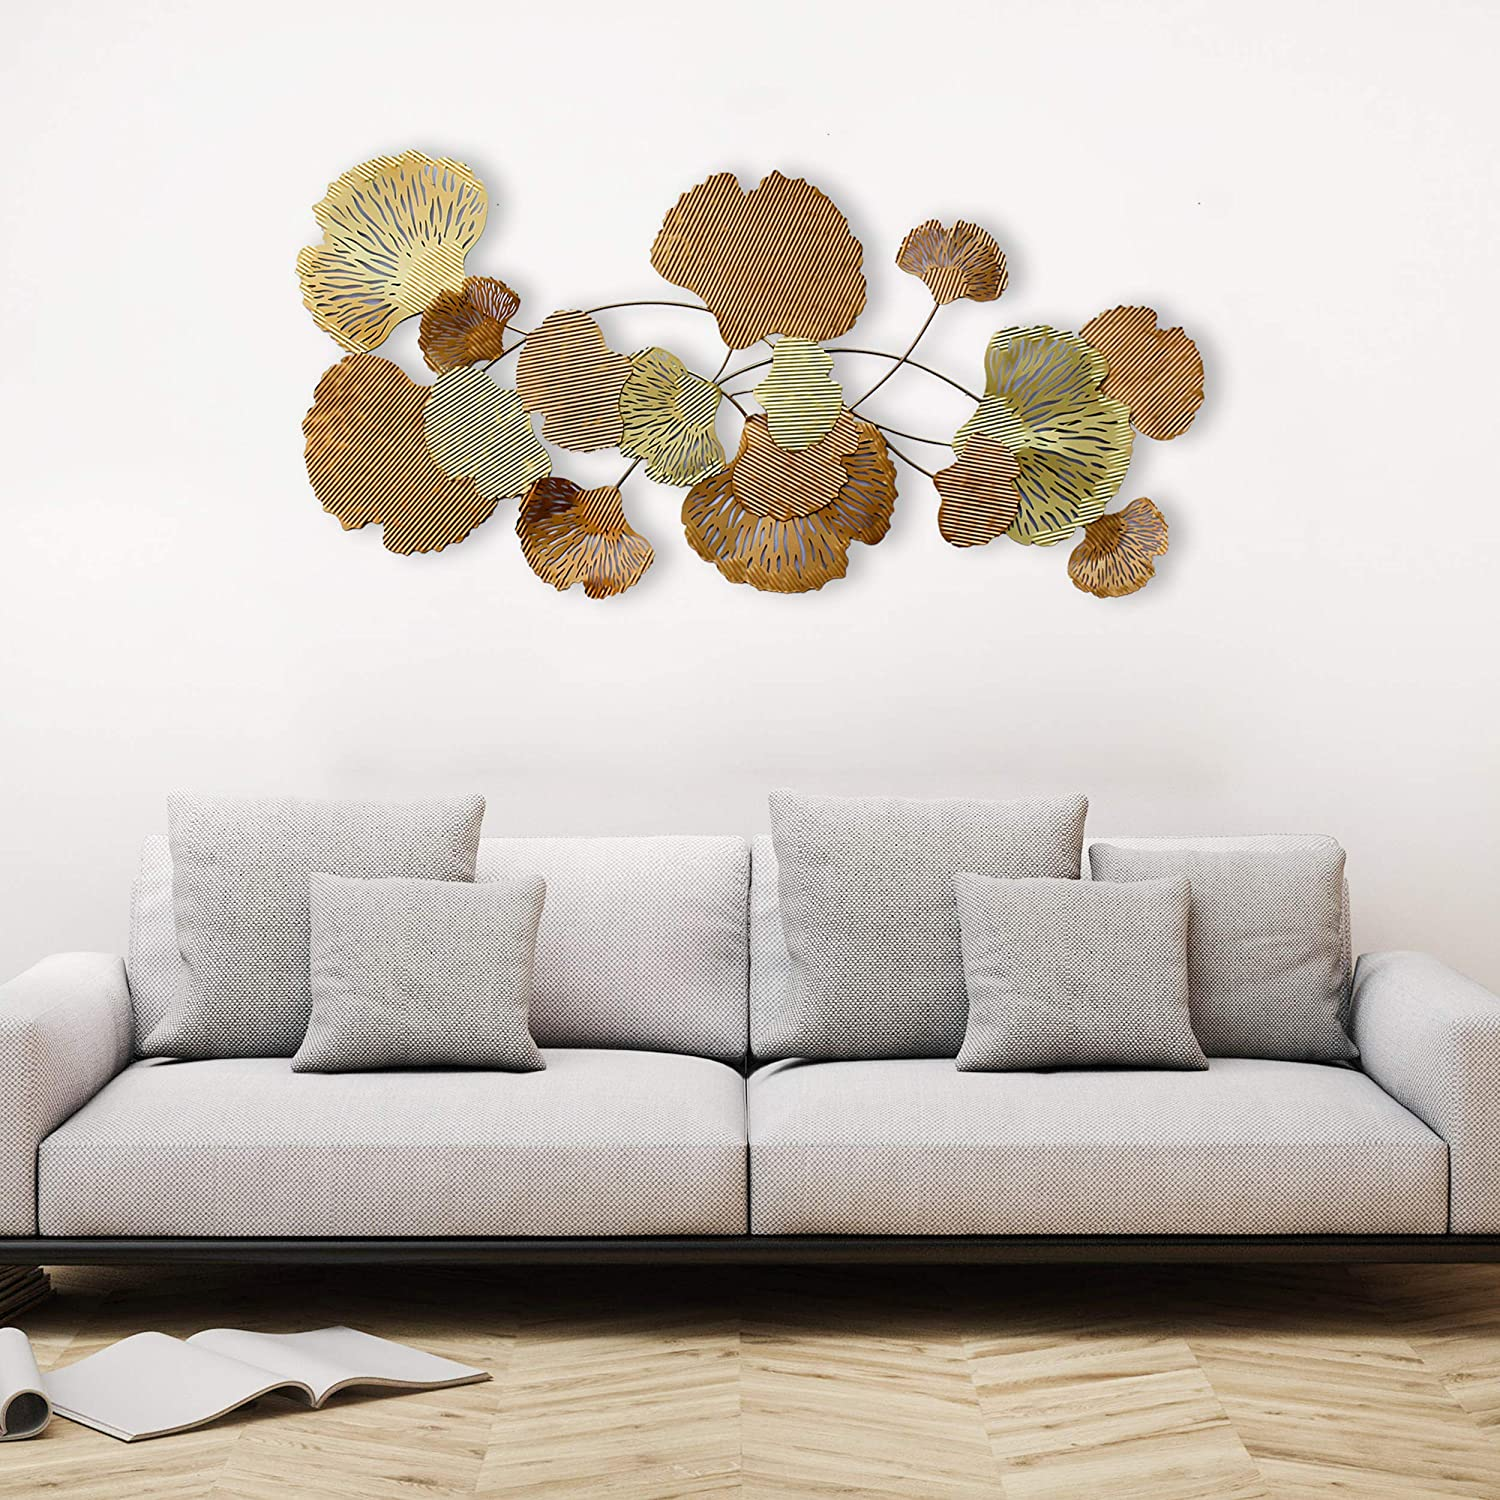 Decorlives Abstract Brass Color Leafs Wall Art H Indefinitely Metal Limited Special Price Sculpture